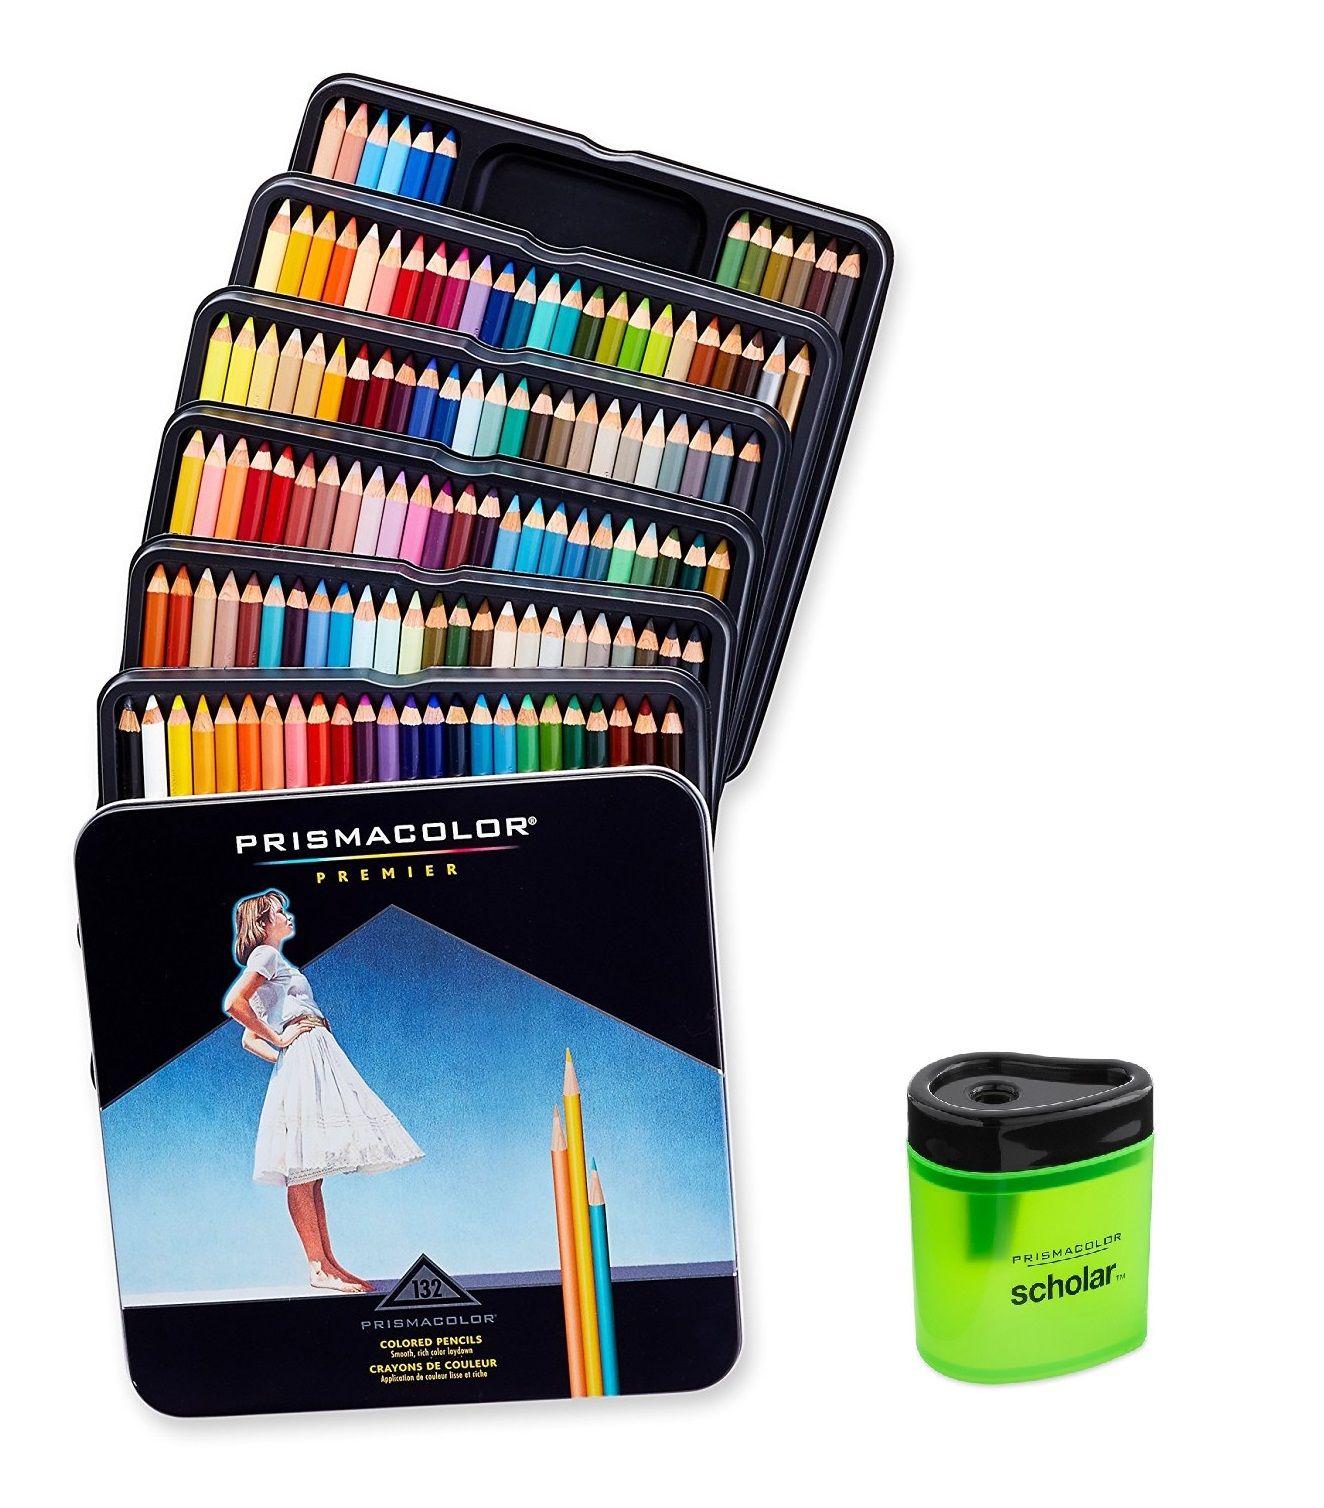 Prismacolor Premier Colored Woodcase Pencils 12 Assorted Colors with Pencil Sharpener